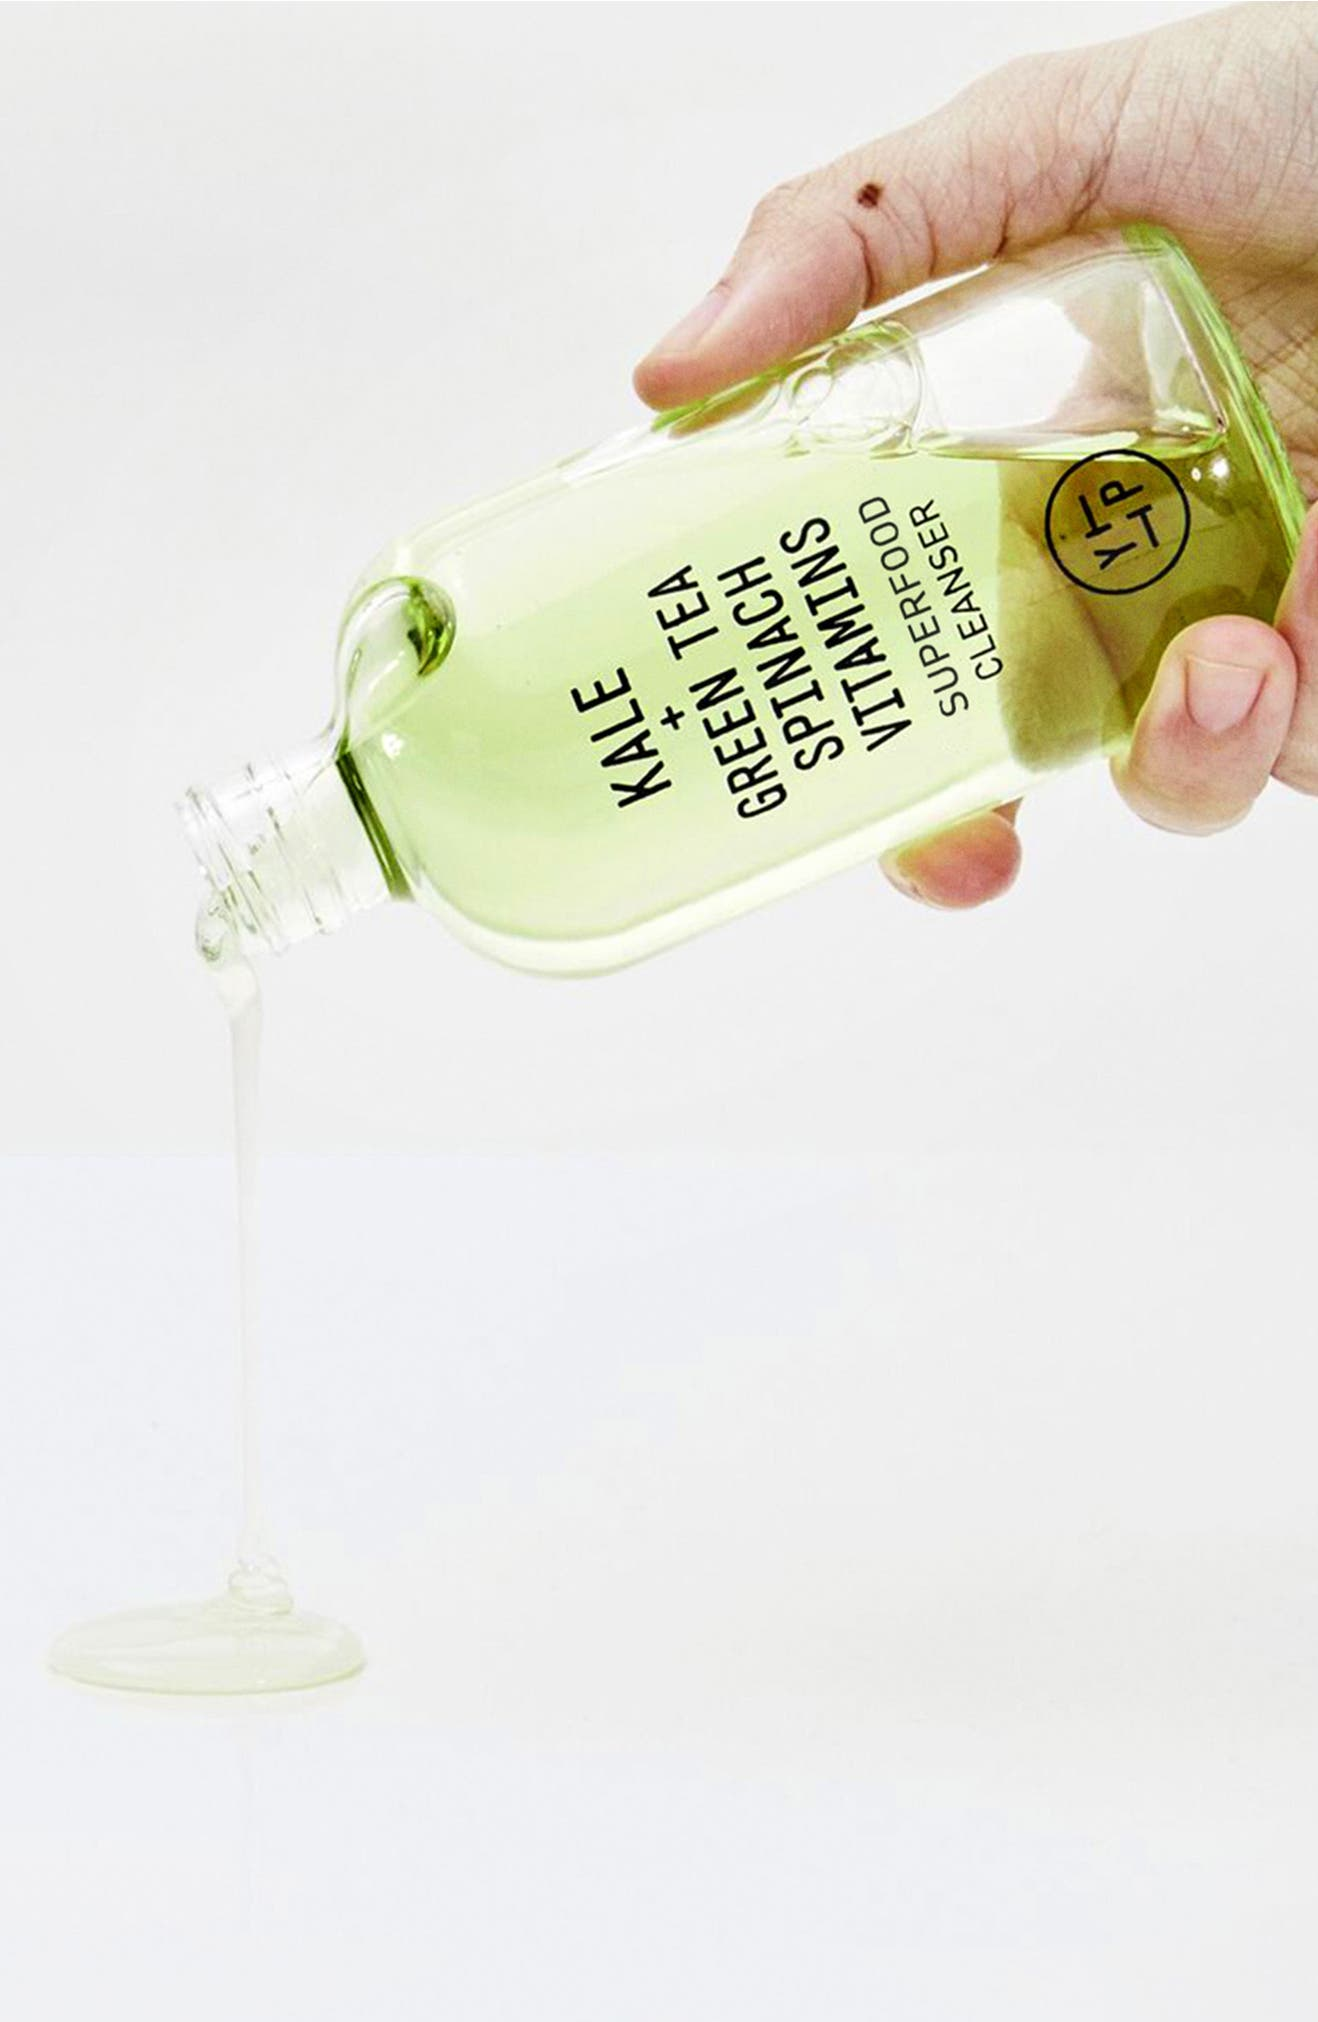 Superfood Cleanser by Youth to the People #20